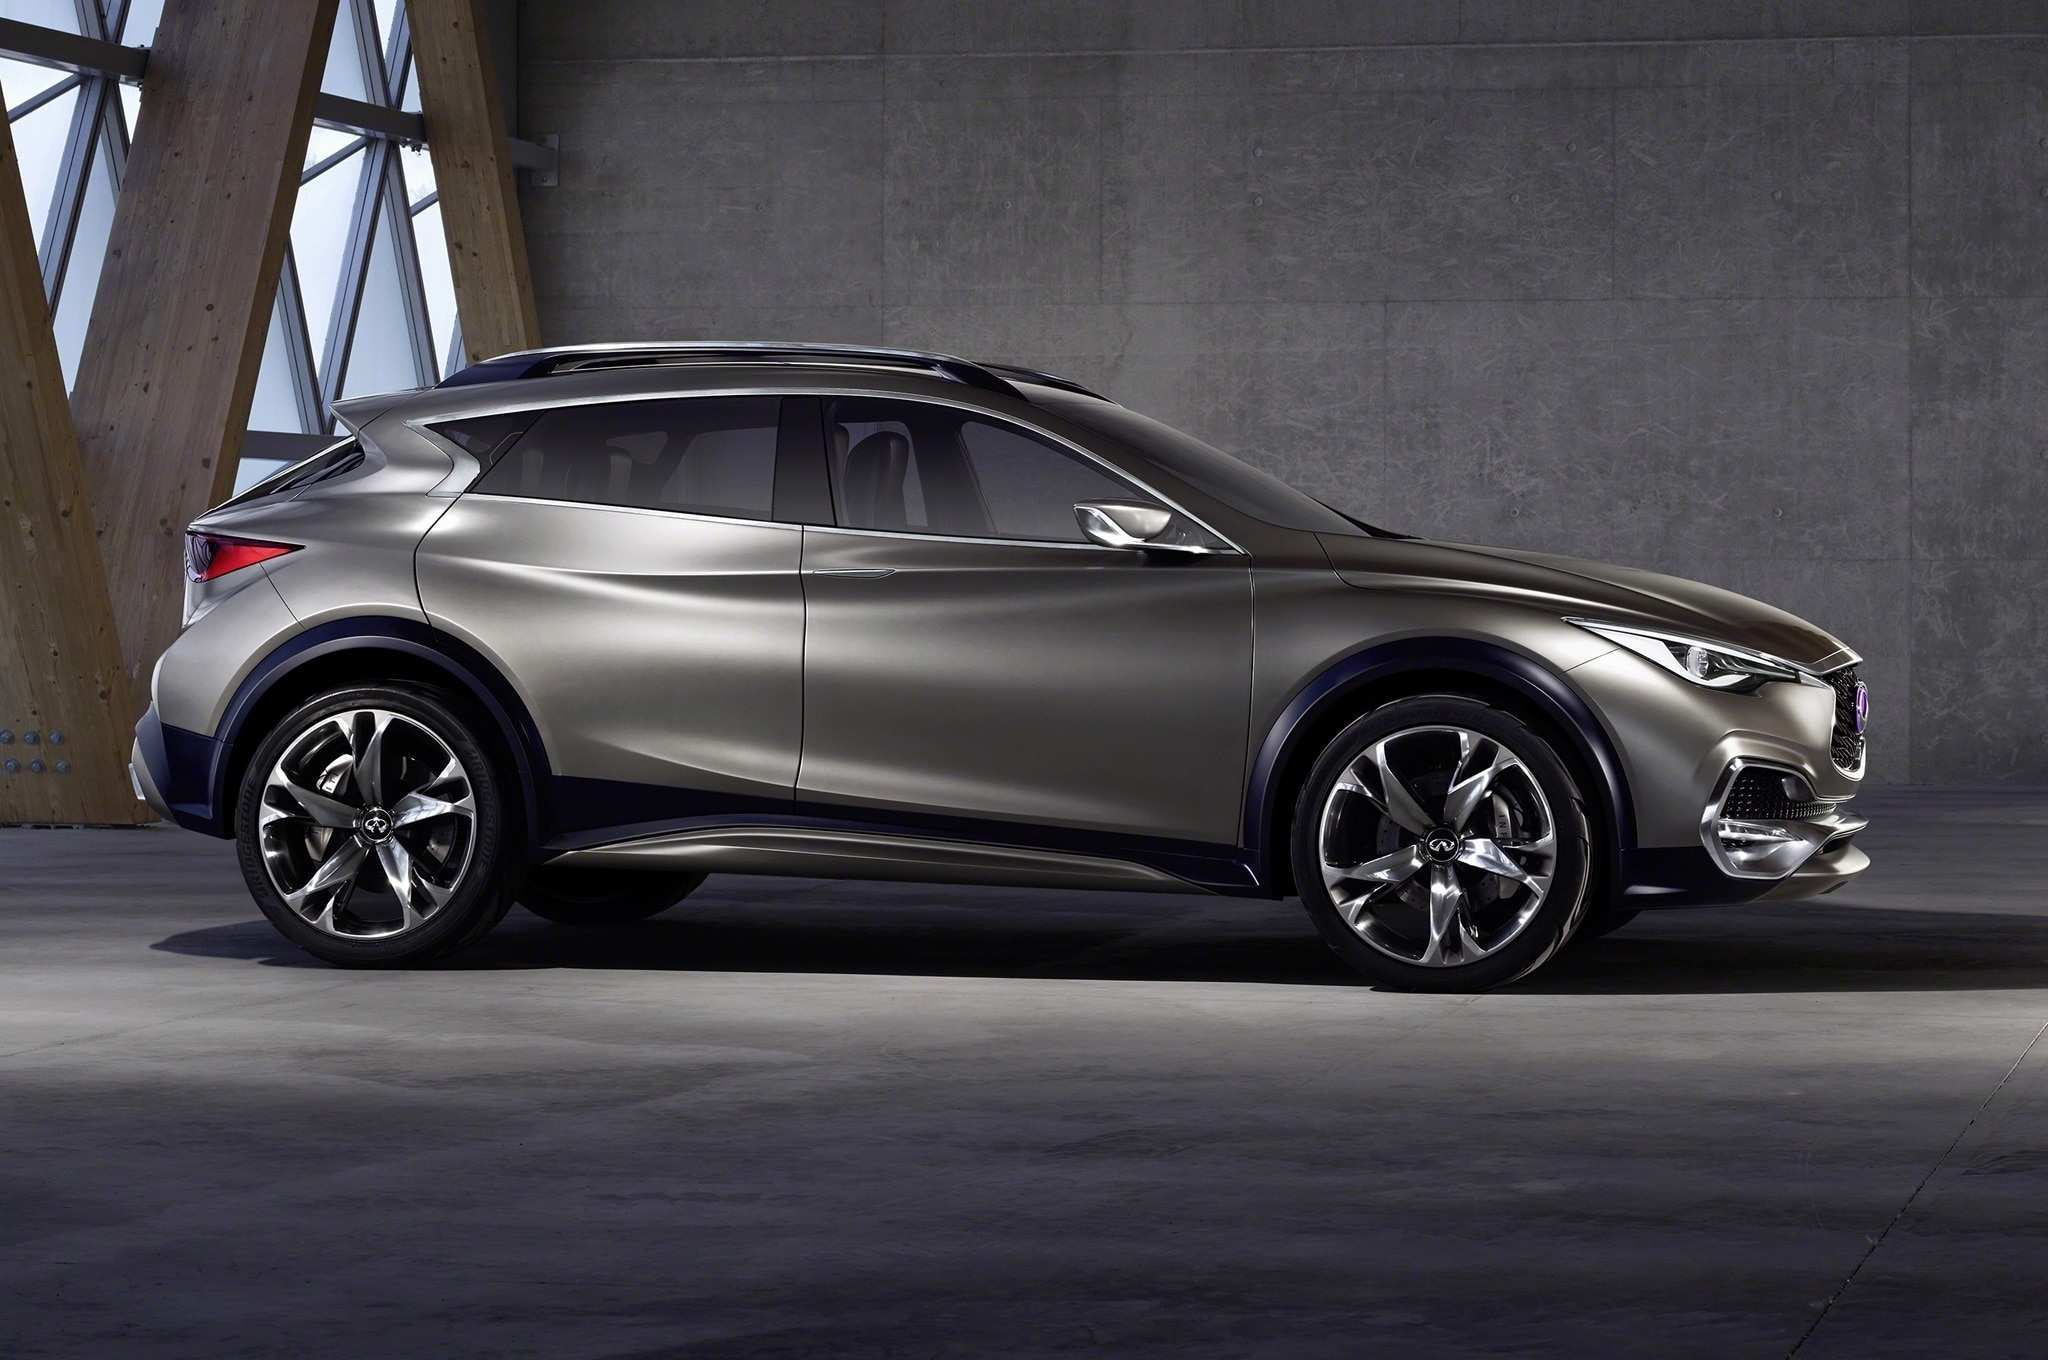 45 The Infiniti Cars For 2020 Images